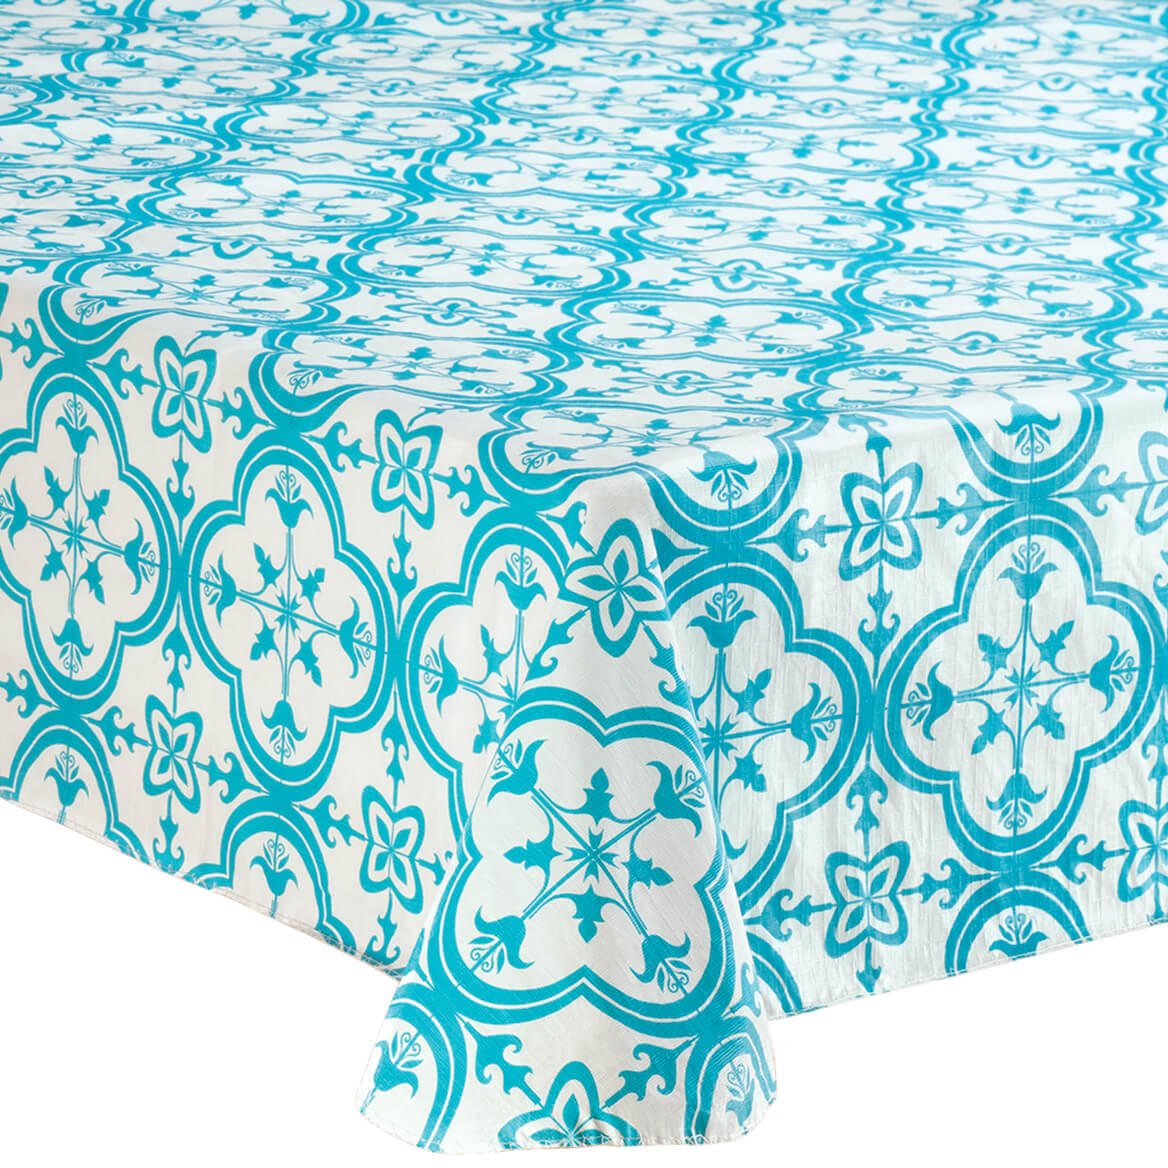 Tiles PEVA Vinyl Table Cover